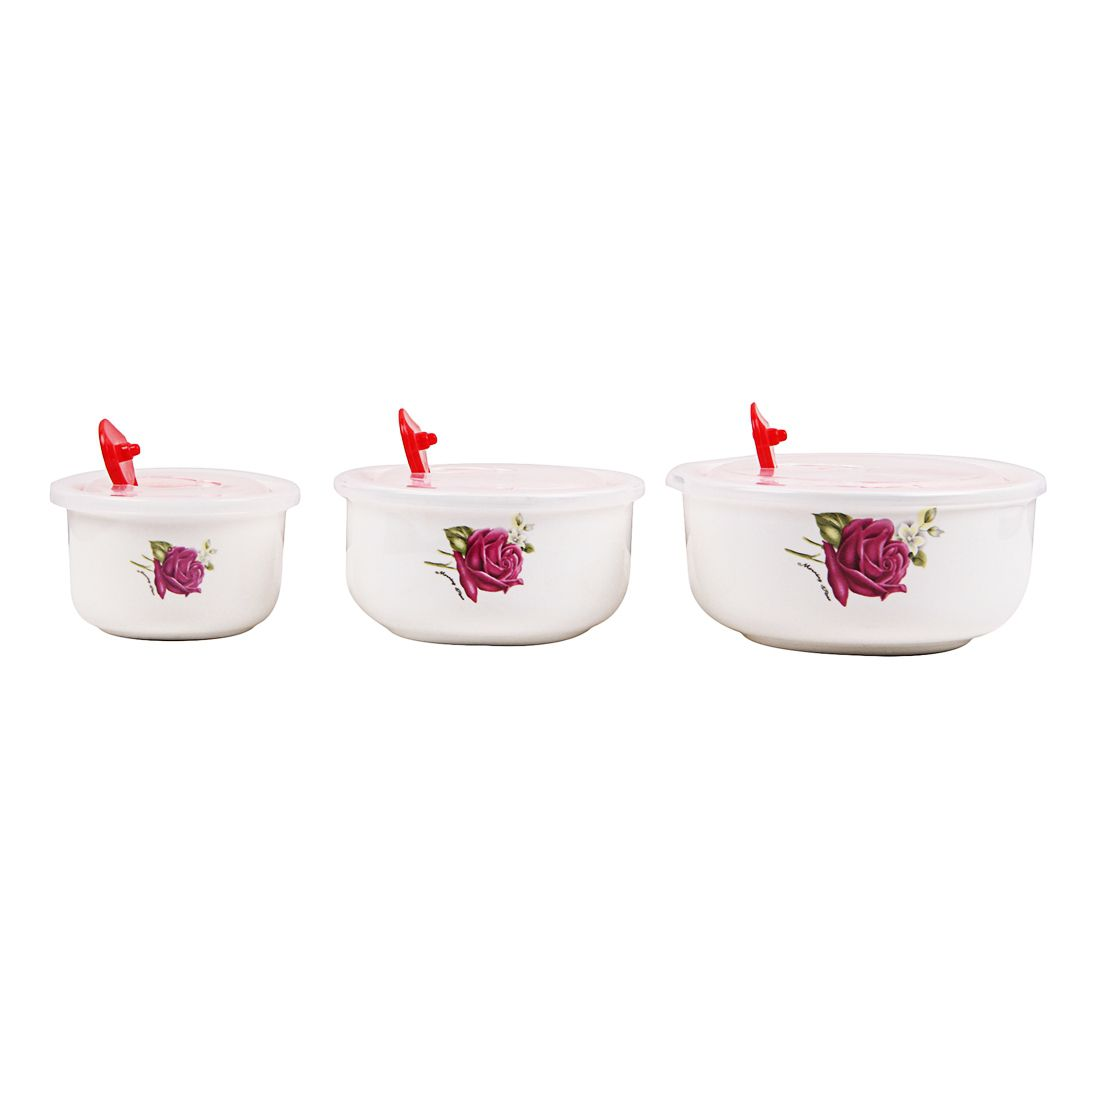 Eloisa White Ceramic Serving Bowls Set Of 3 Buy Online